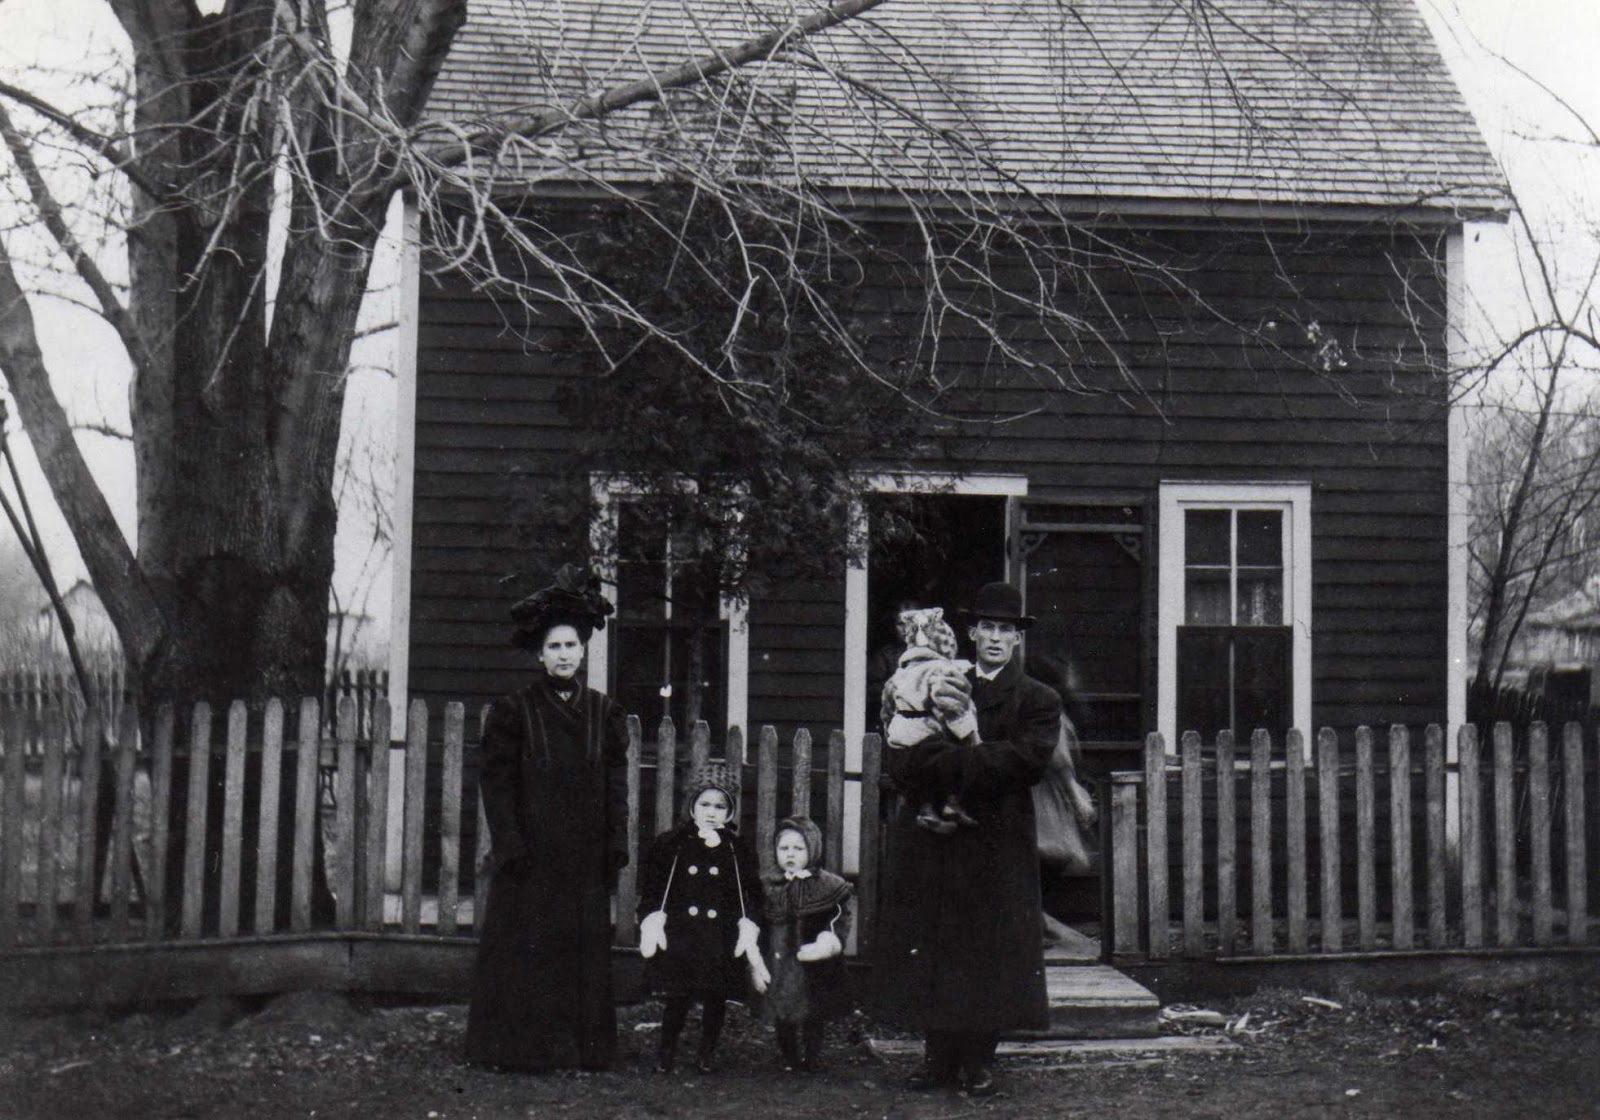 Indiana jasper county tefft - The Alonzo Hilliard Family And Home C 1900 Tefft Or Dunnville